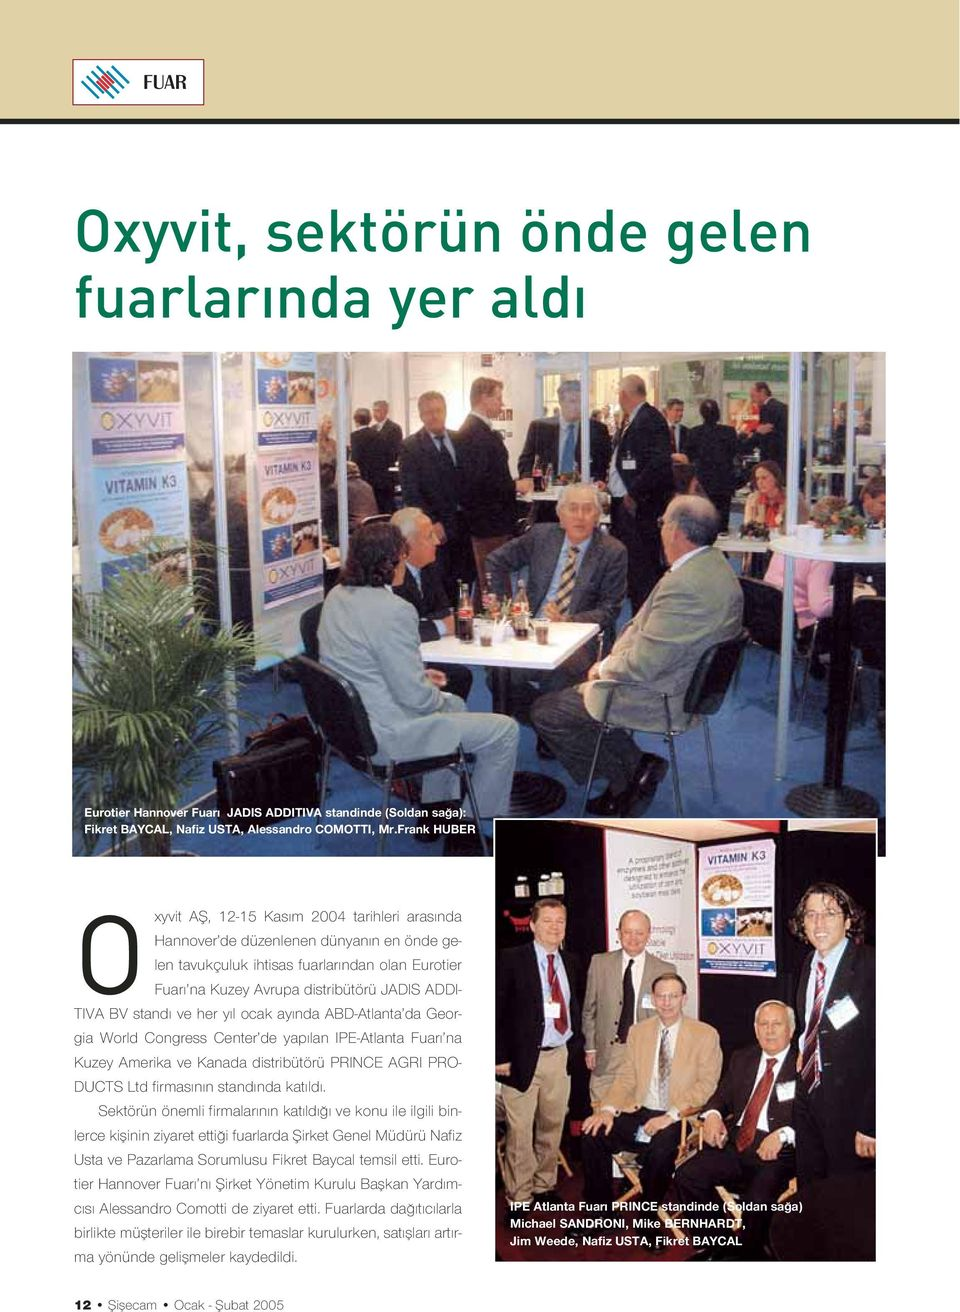 TIVA BV stand ve her y l ocak ay nda ABD-Atlanta da Georgia World Congress Center de yap lan IPE-Atlanta Fuar na Kuzey Amerika ve Kanada distribütörü PRINCE AGRI PRO- DUCTS Ltd firmas n n stand nda